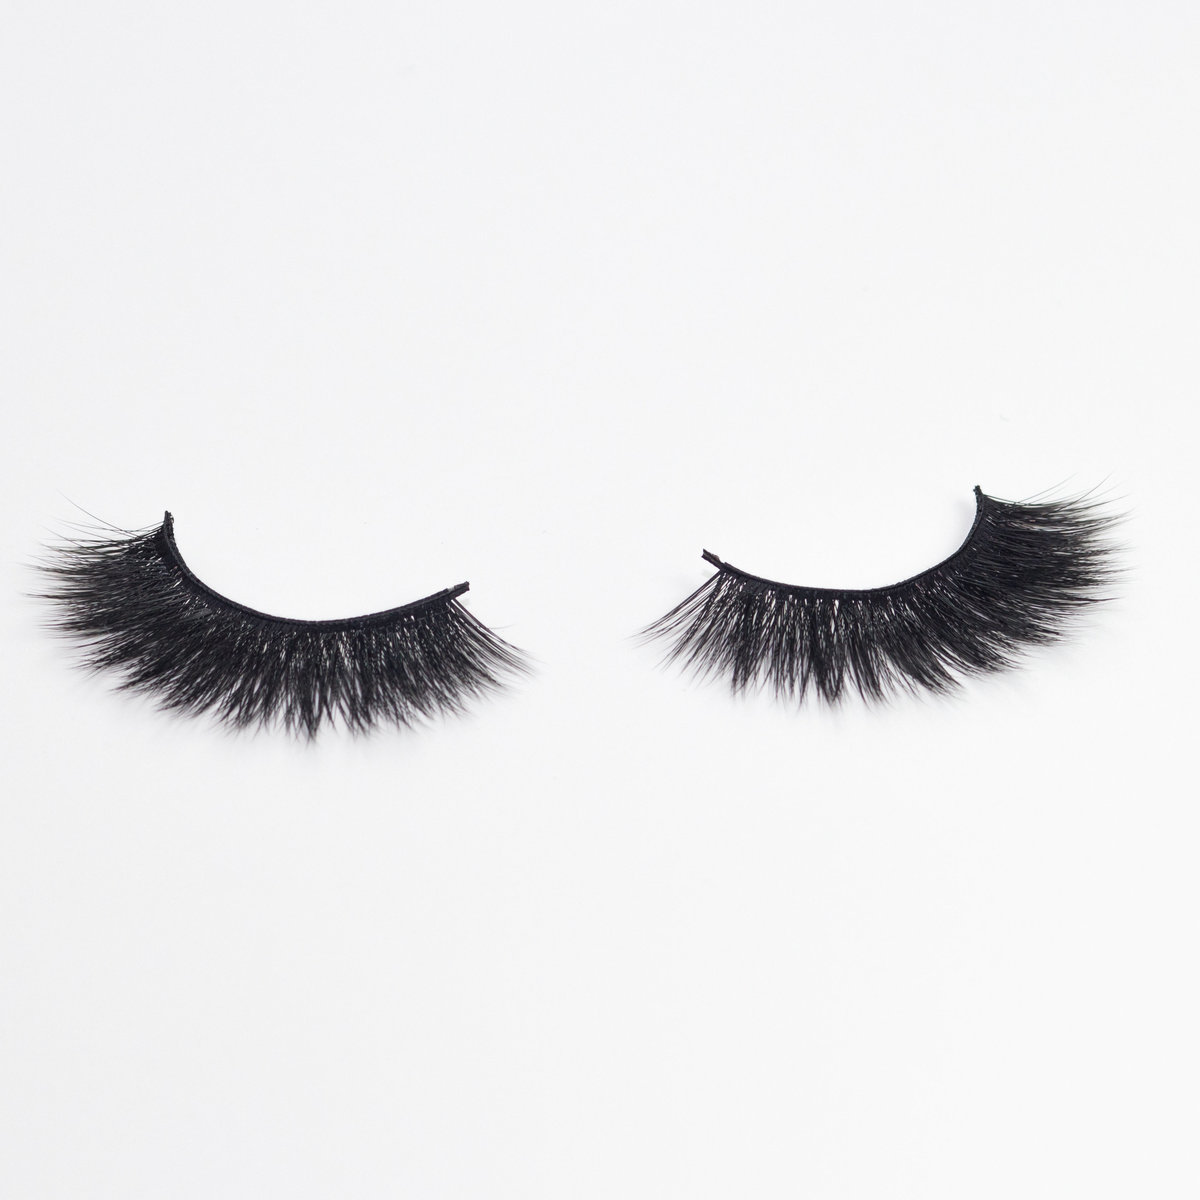 Belle-of-the-Ball-Mink-Eyelashes-Product-Photography-1